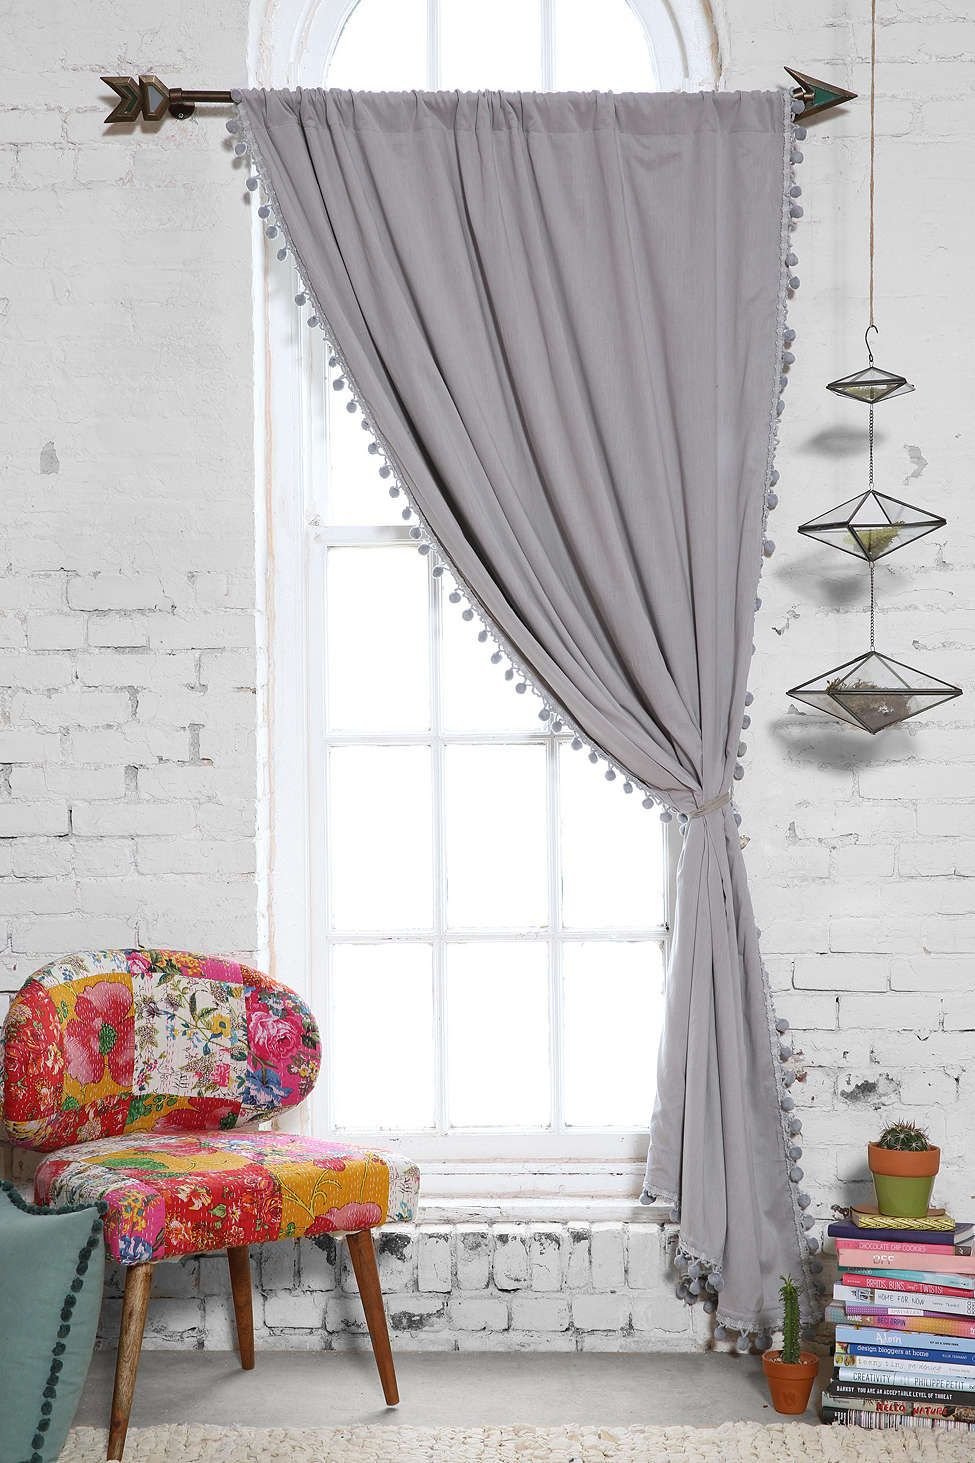 window pinterest curtain design curtains home ideas bedroom small minimalist pin